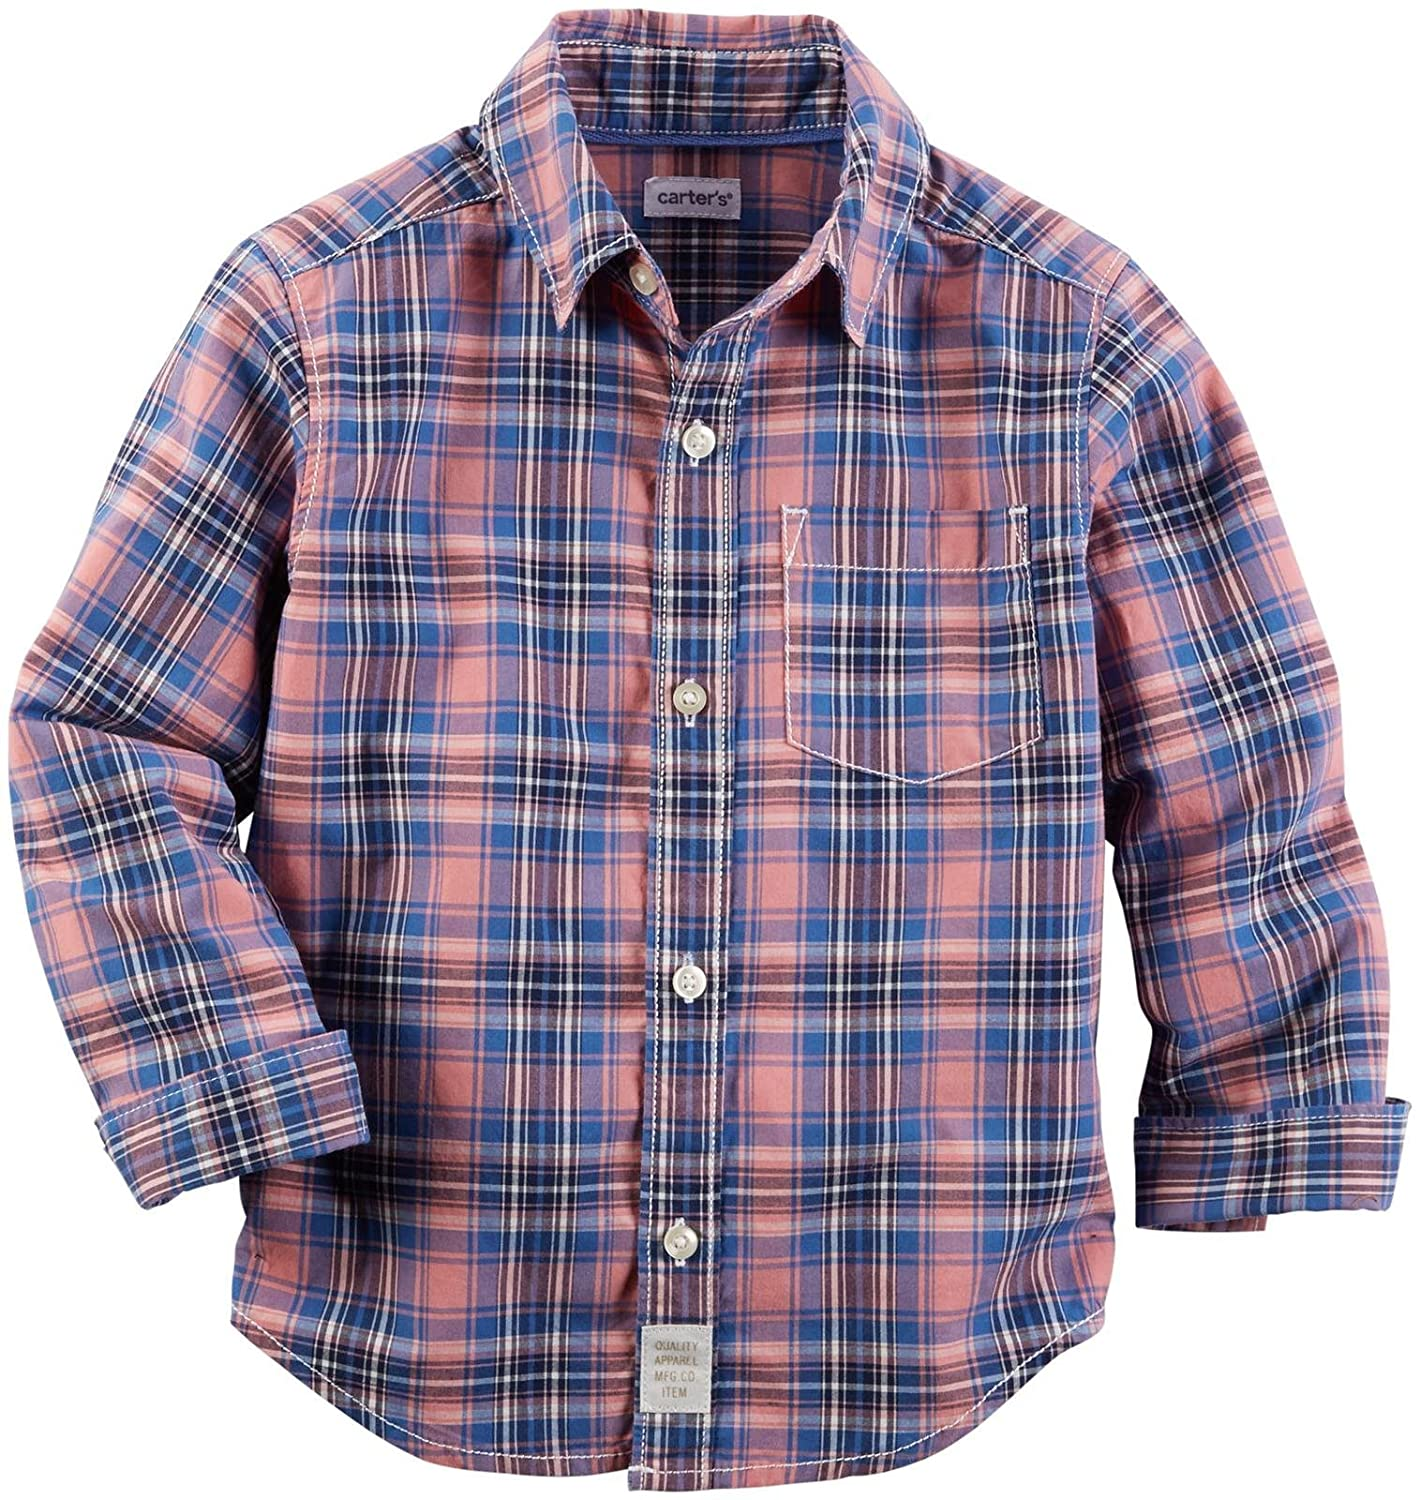 Carter's Baby-Boys Woven Buttonfront 225g529 Plaid 6 Months Carters 225G529-Plaid-6 Months